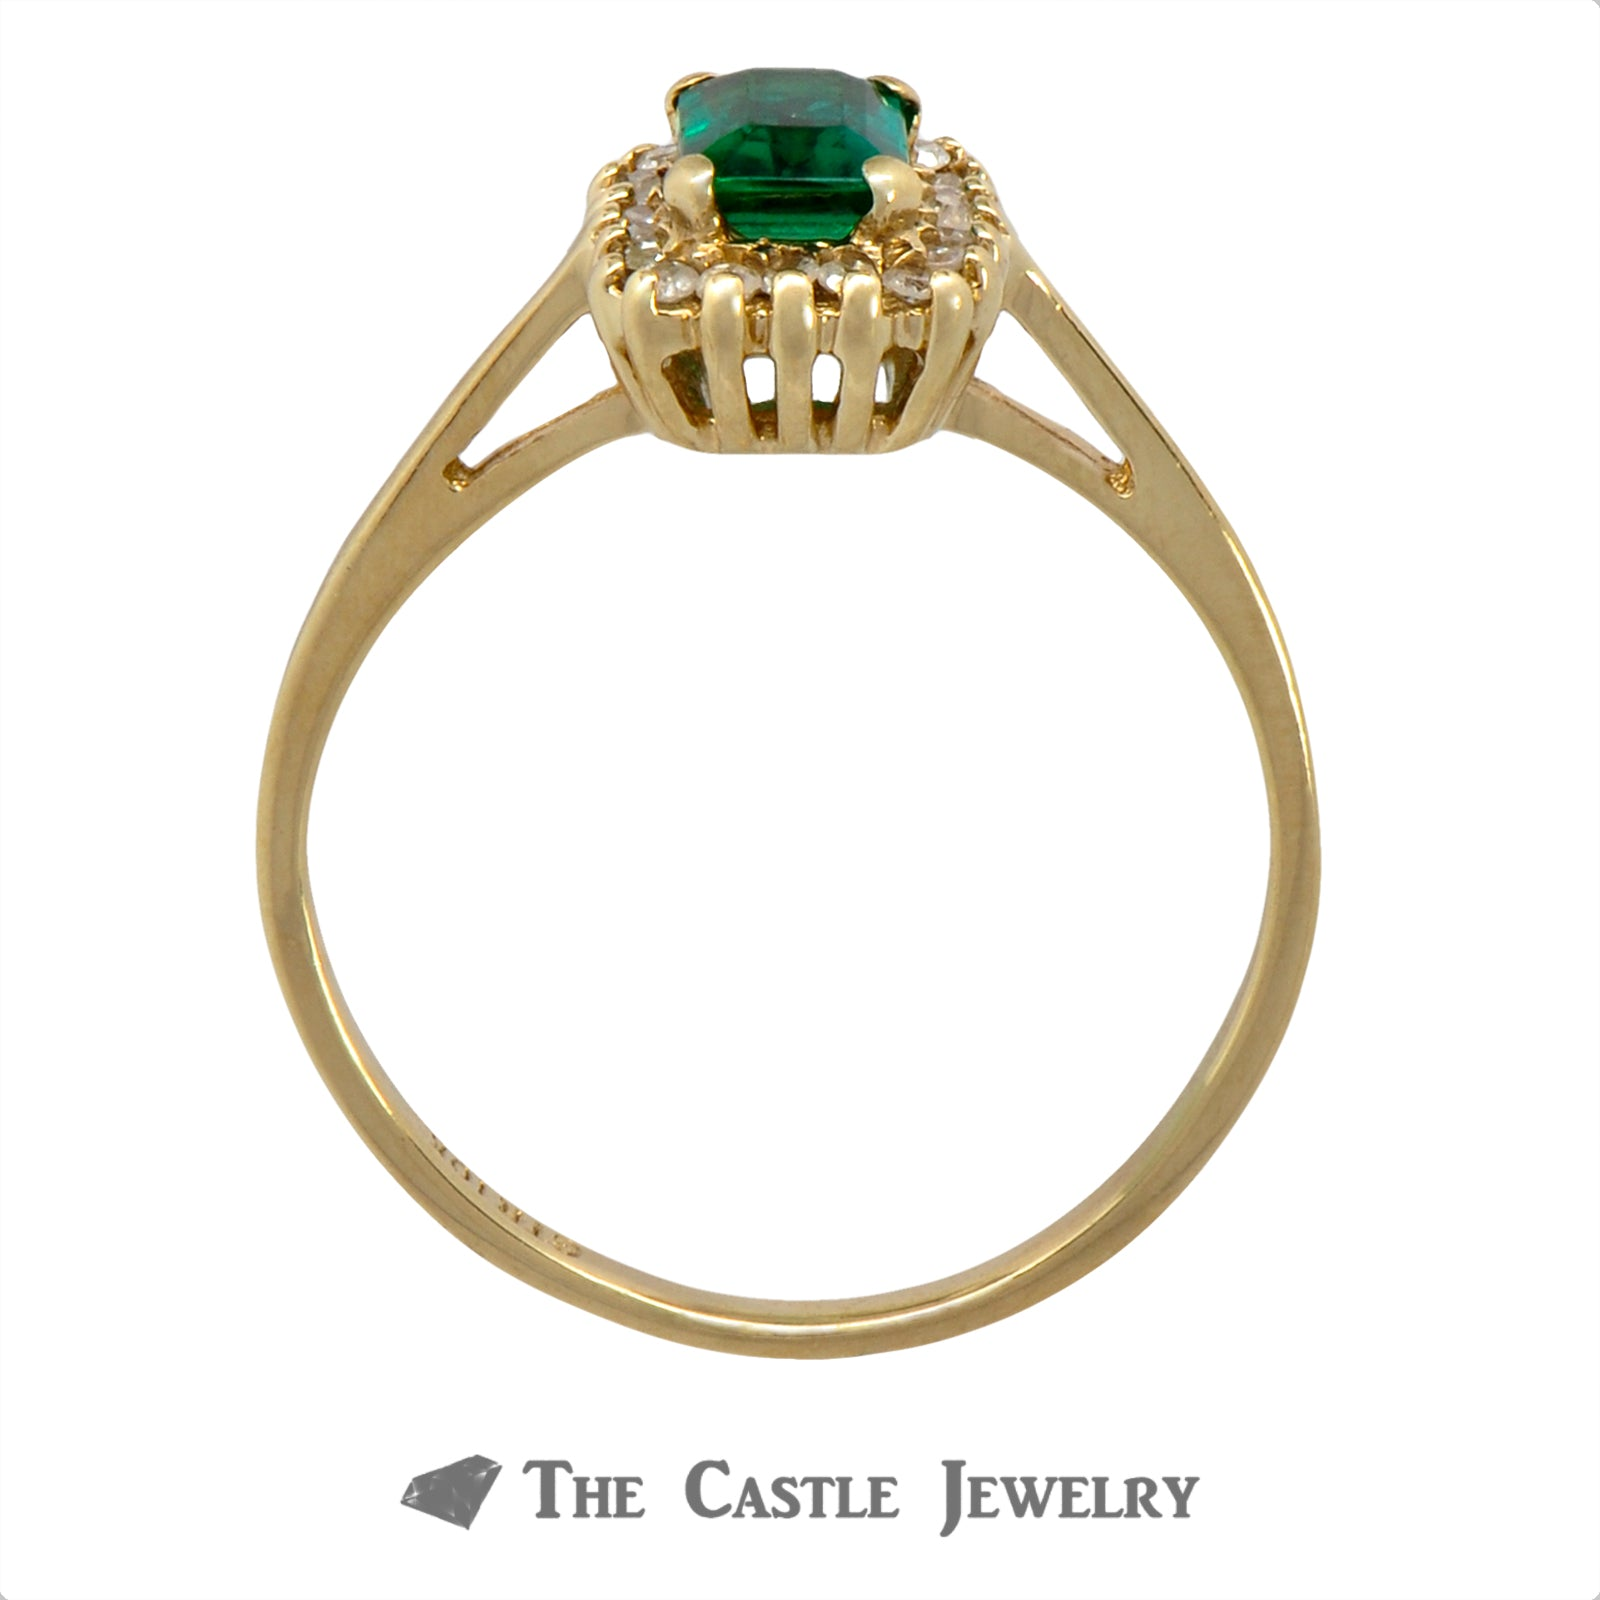 Emerald Ring with Round Brilliant Cut Diamond Halo Crafted in 10k Yellow Gold-1